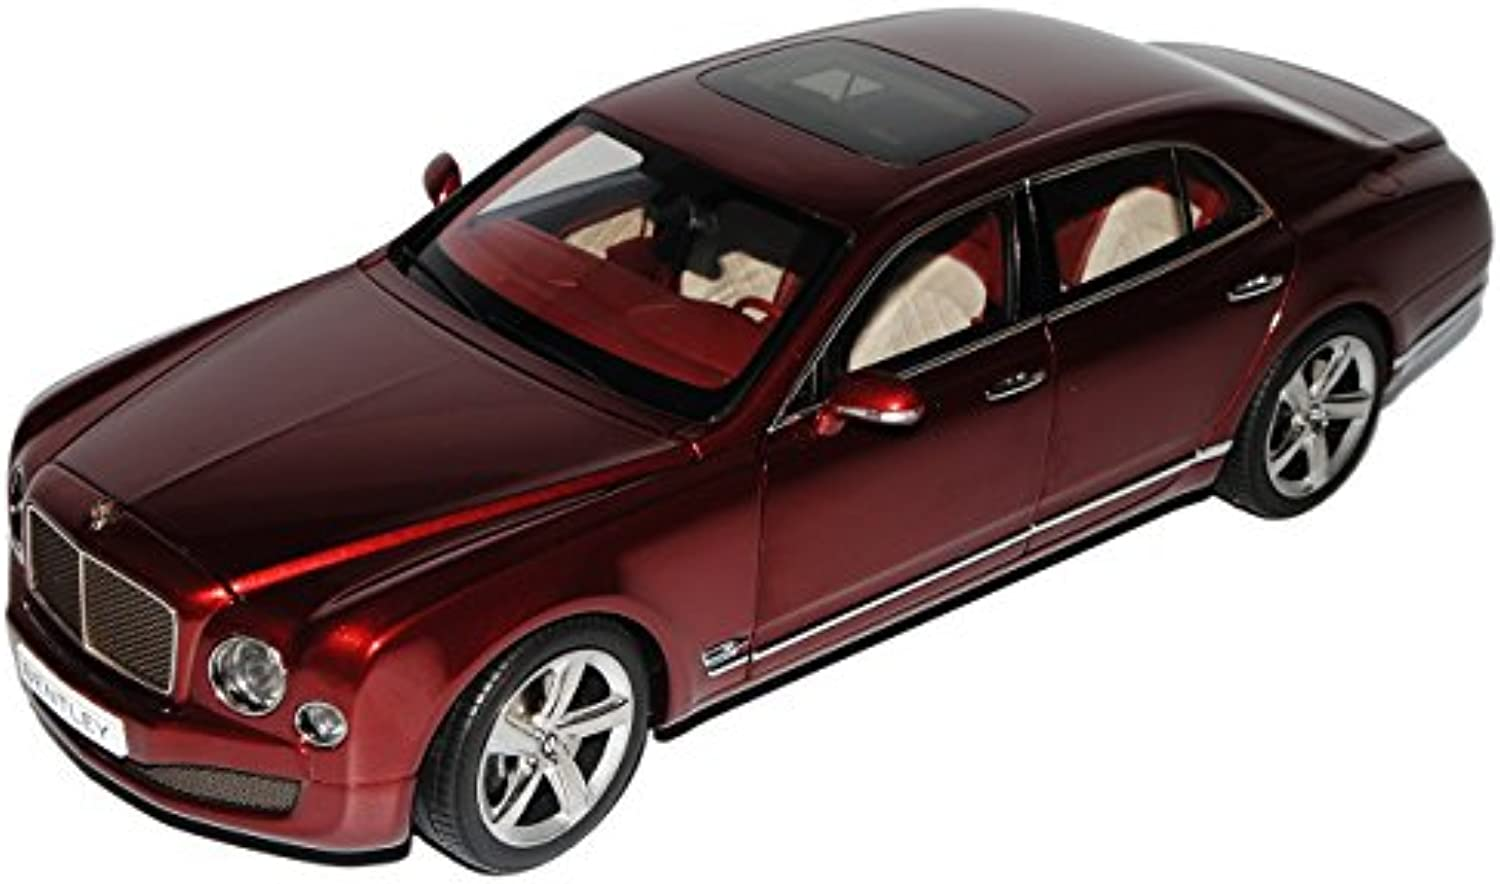 Kyosho Bentley Mulsanne Speed Dunkel Rot Ab 2009 Ab Facelift 2014 8910NX 1 18 Modell Auto